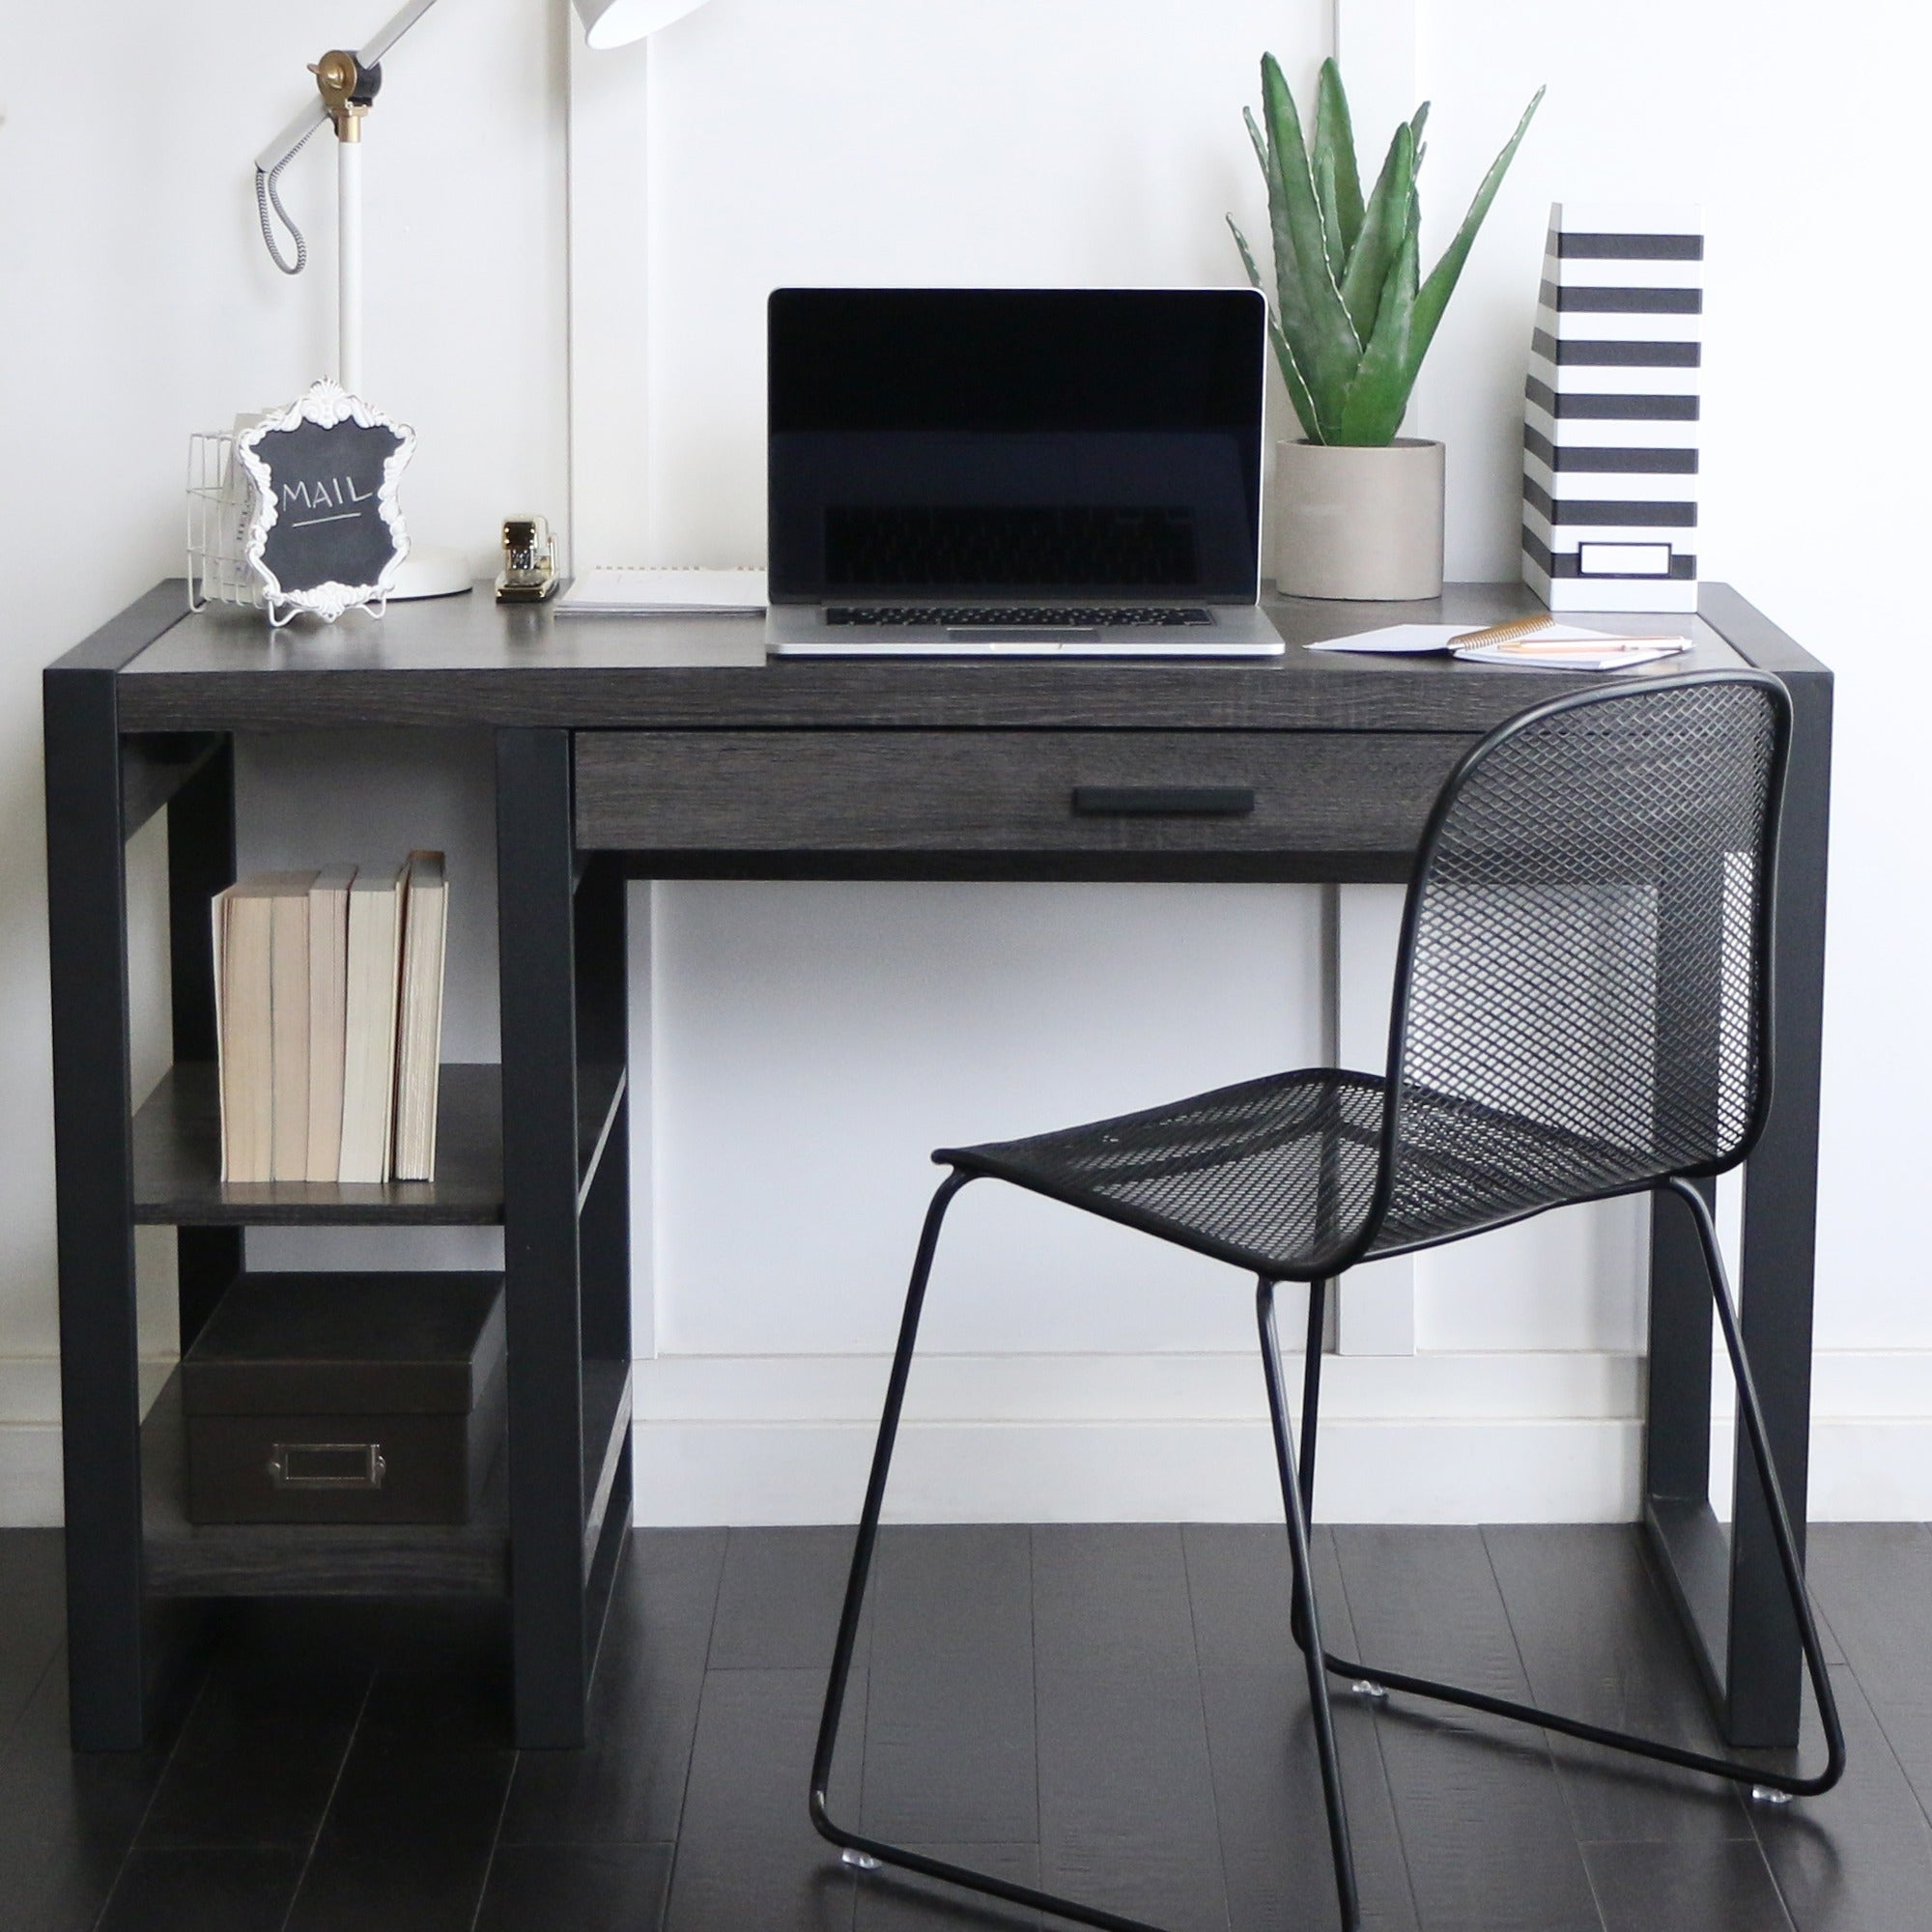 urban industrial in desks tenon mortise furniture angeles desk products store featuring brea los la custom modern writing